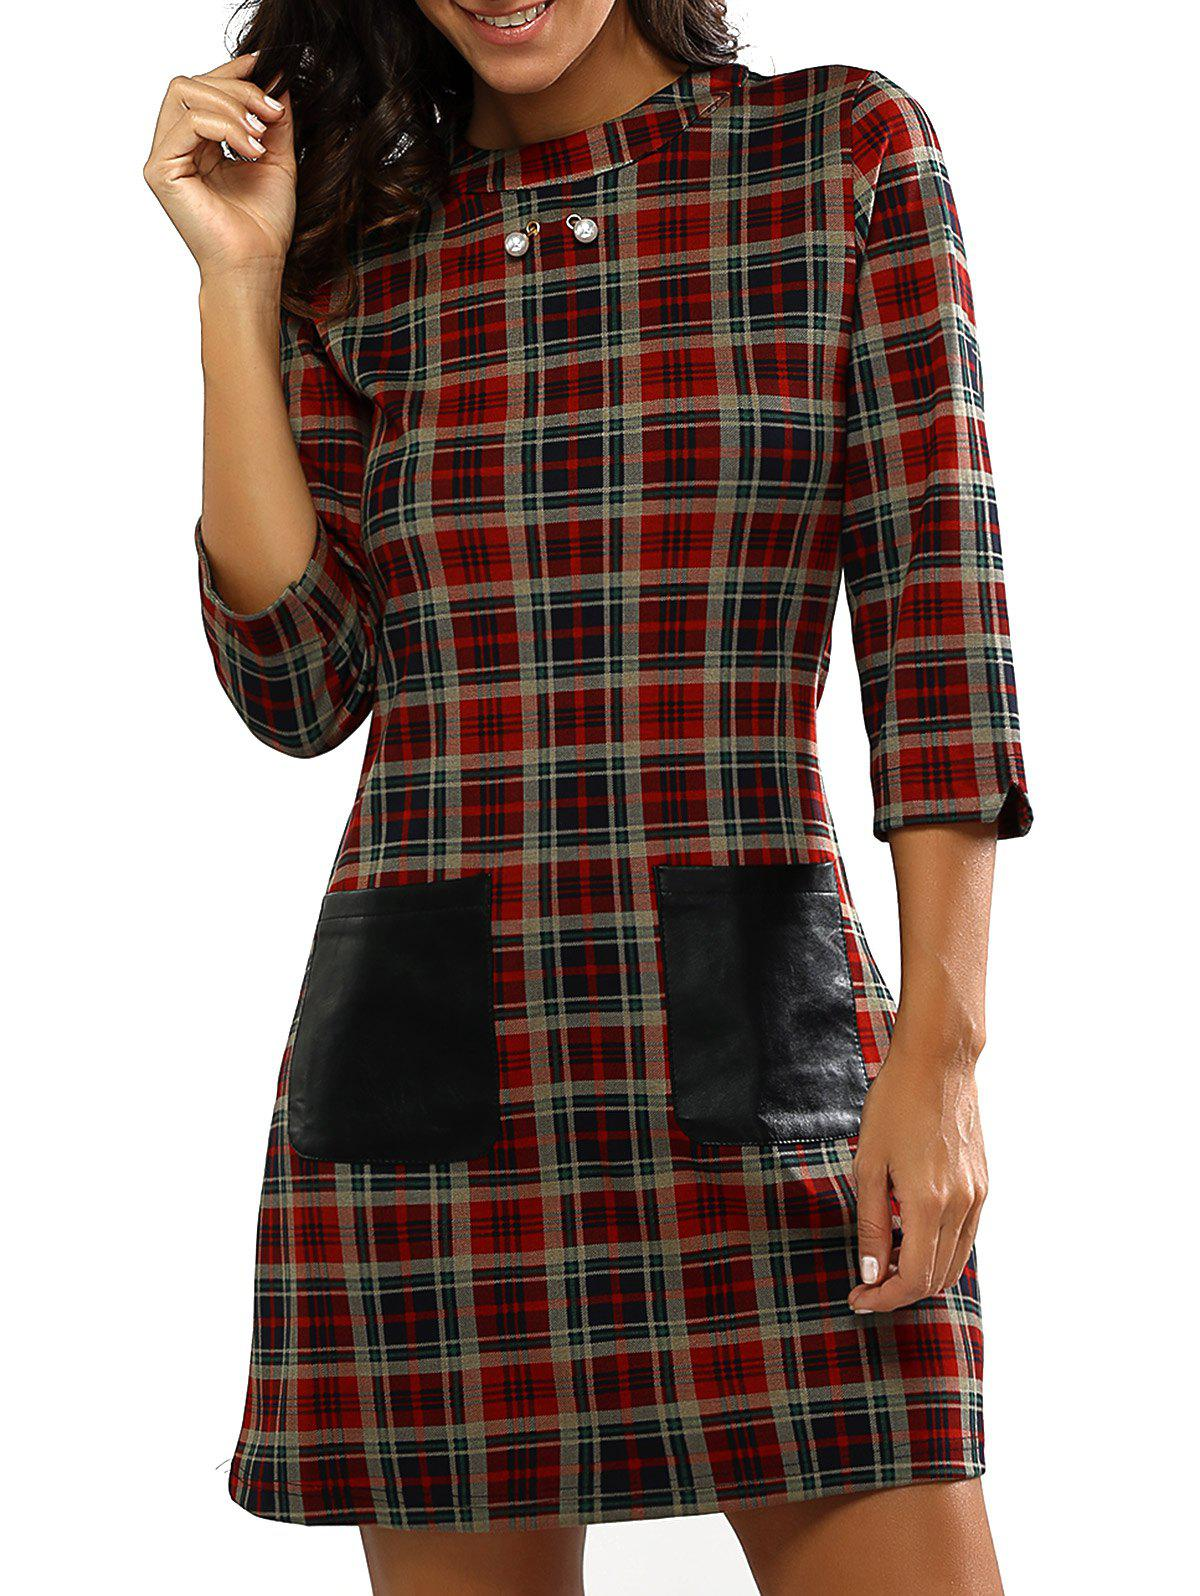 Retro Gingham Print Faux Lether Pocket Dress - CHECKED XL